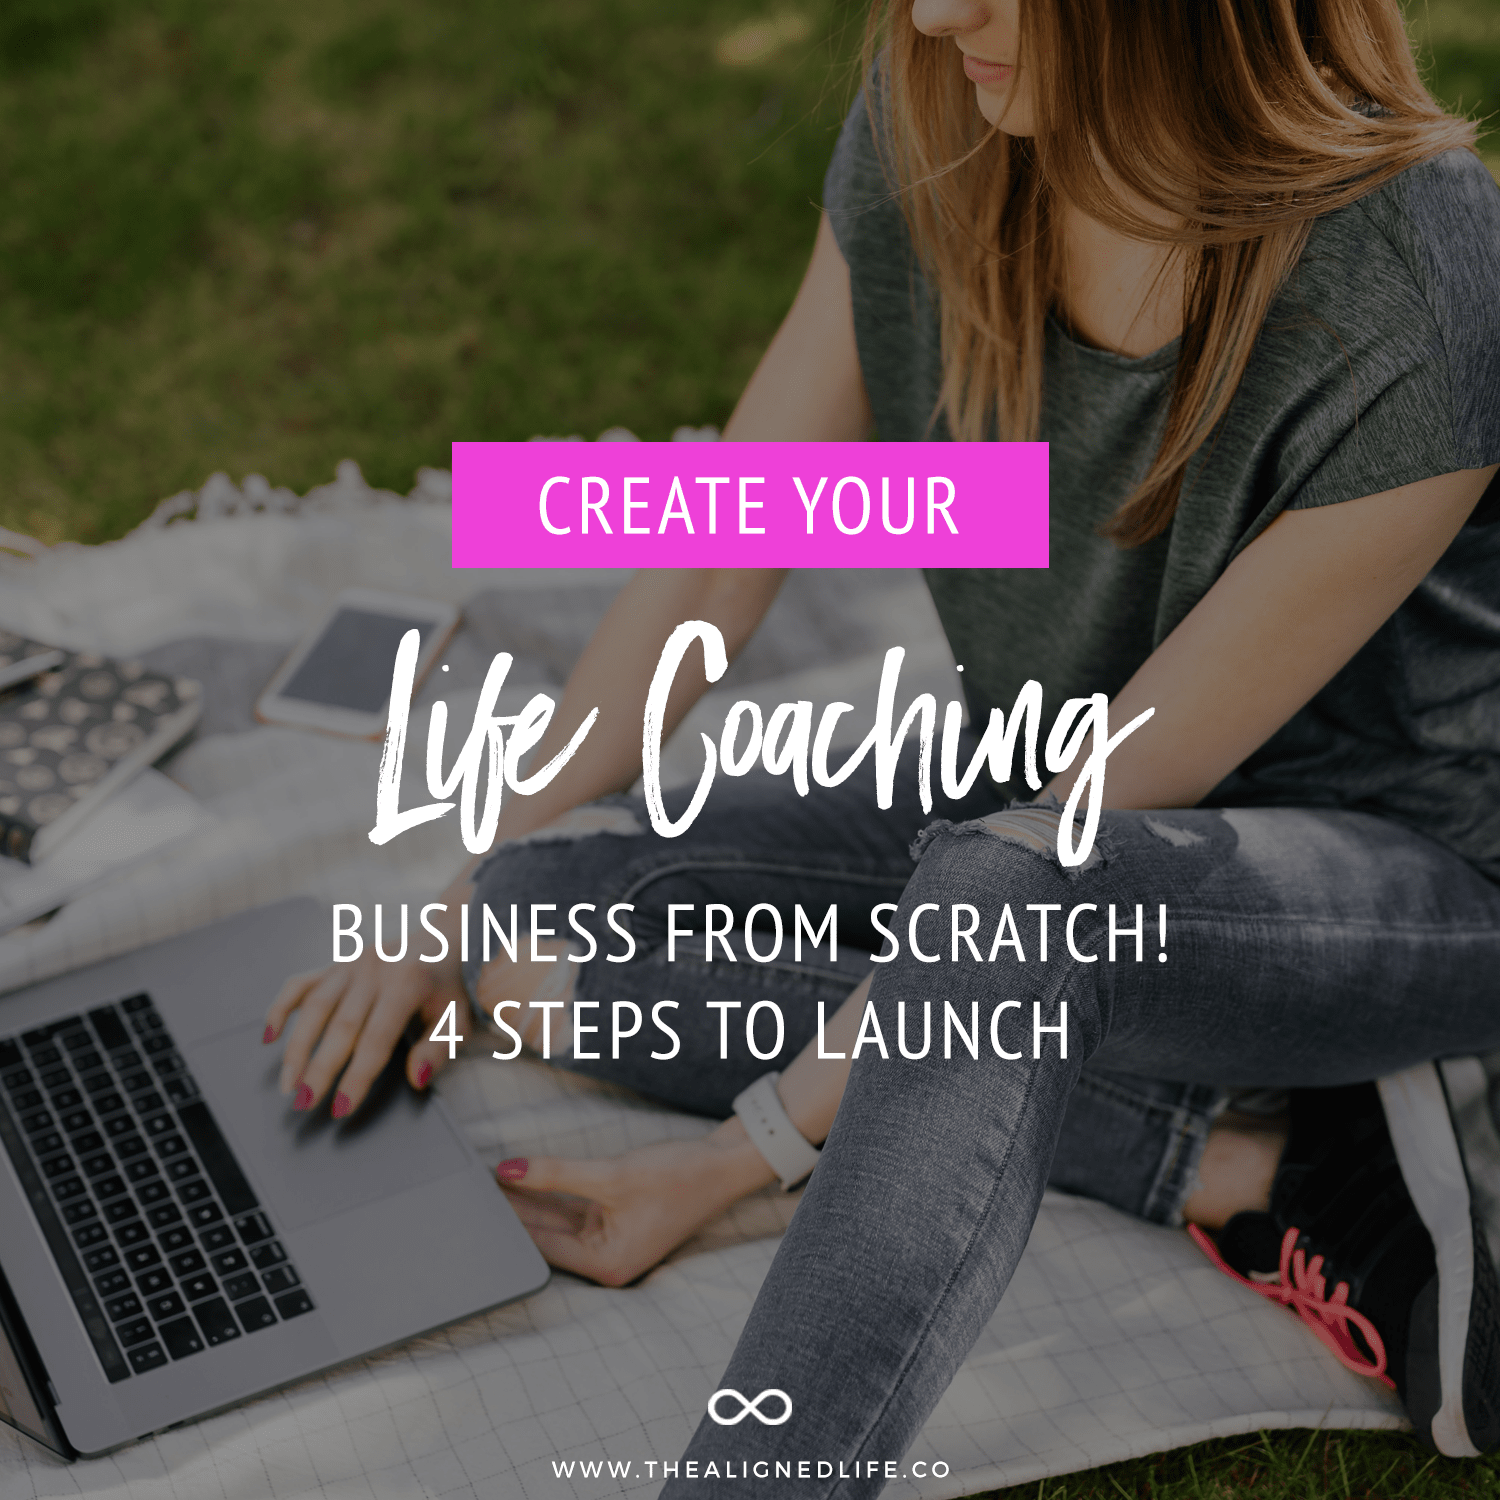 Create Your Life Coaching Business From Scratch: 4 Steps To Get Started Today